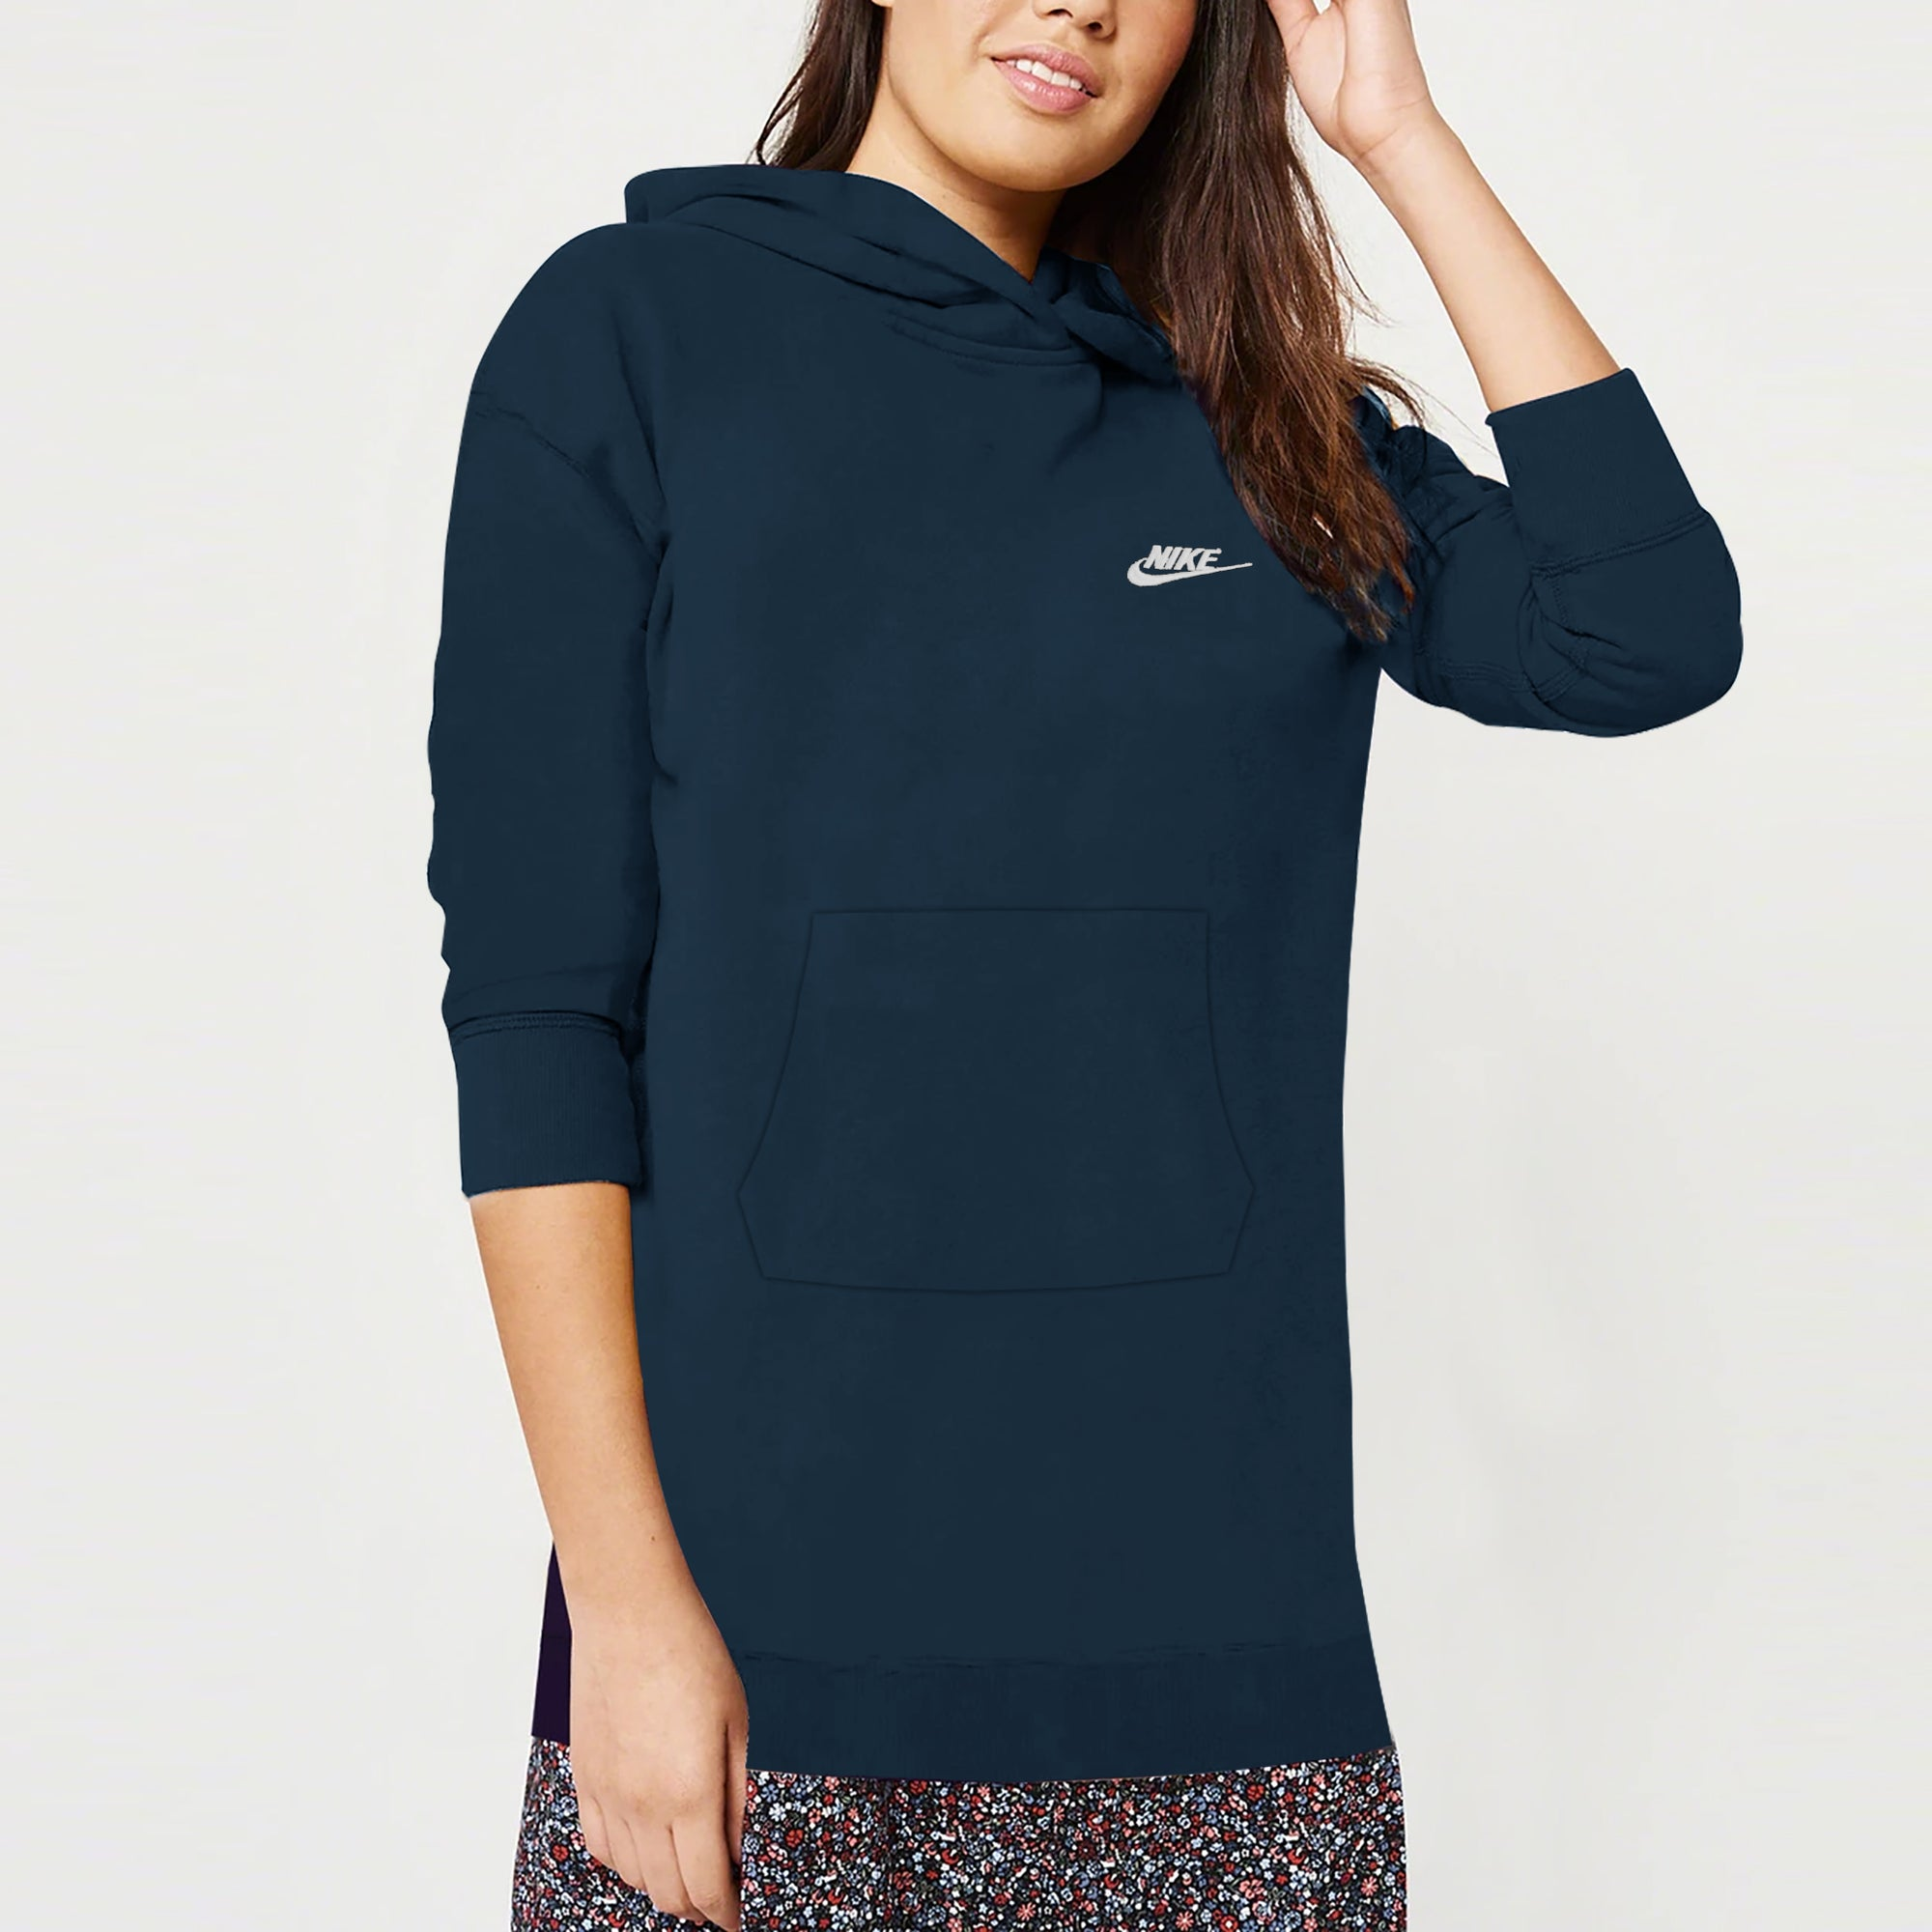 NK Terry Fleece Long Line Pullover Hoodie For Ladies-Ferozi-SP1325